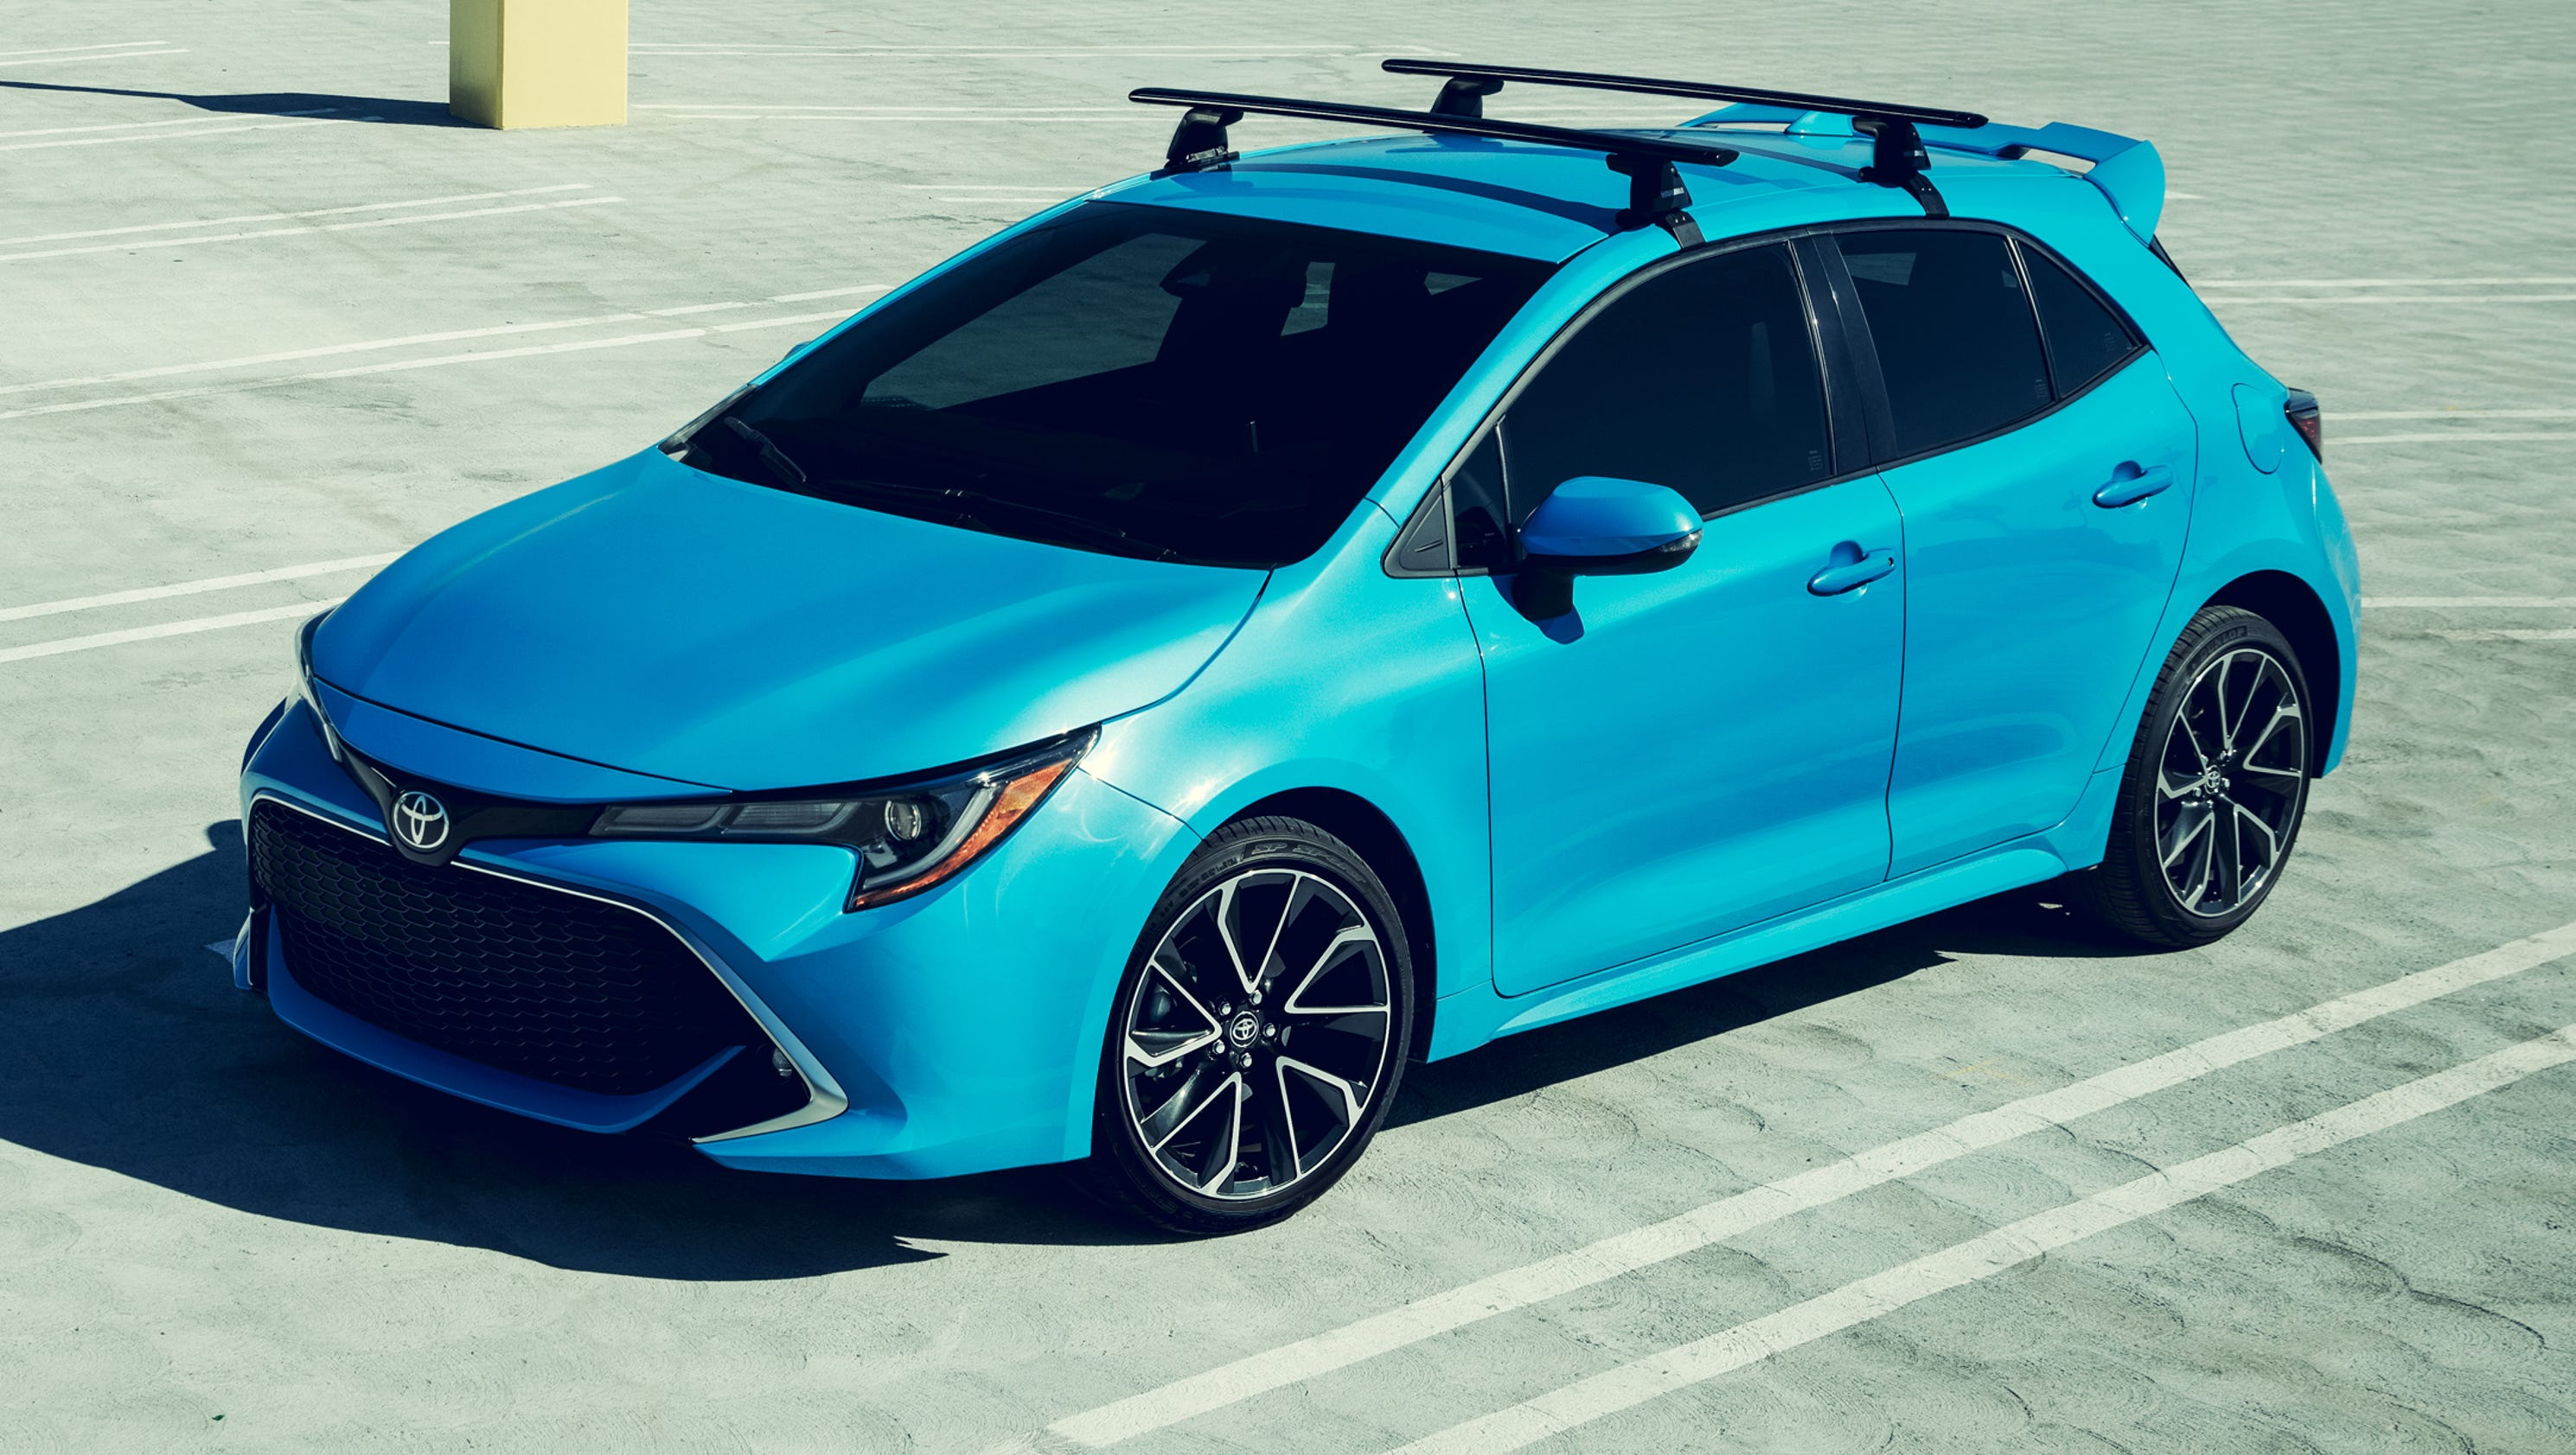 Toyota Green Bay >> Toyota revamps Yaris, Corolla lineup with new versions